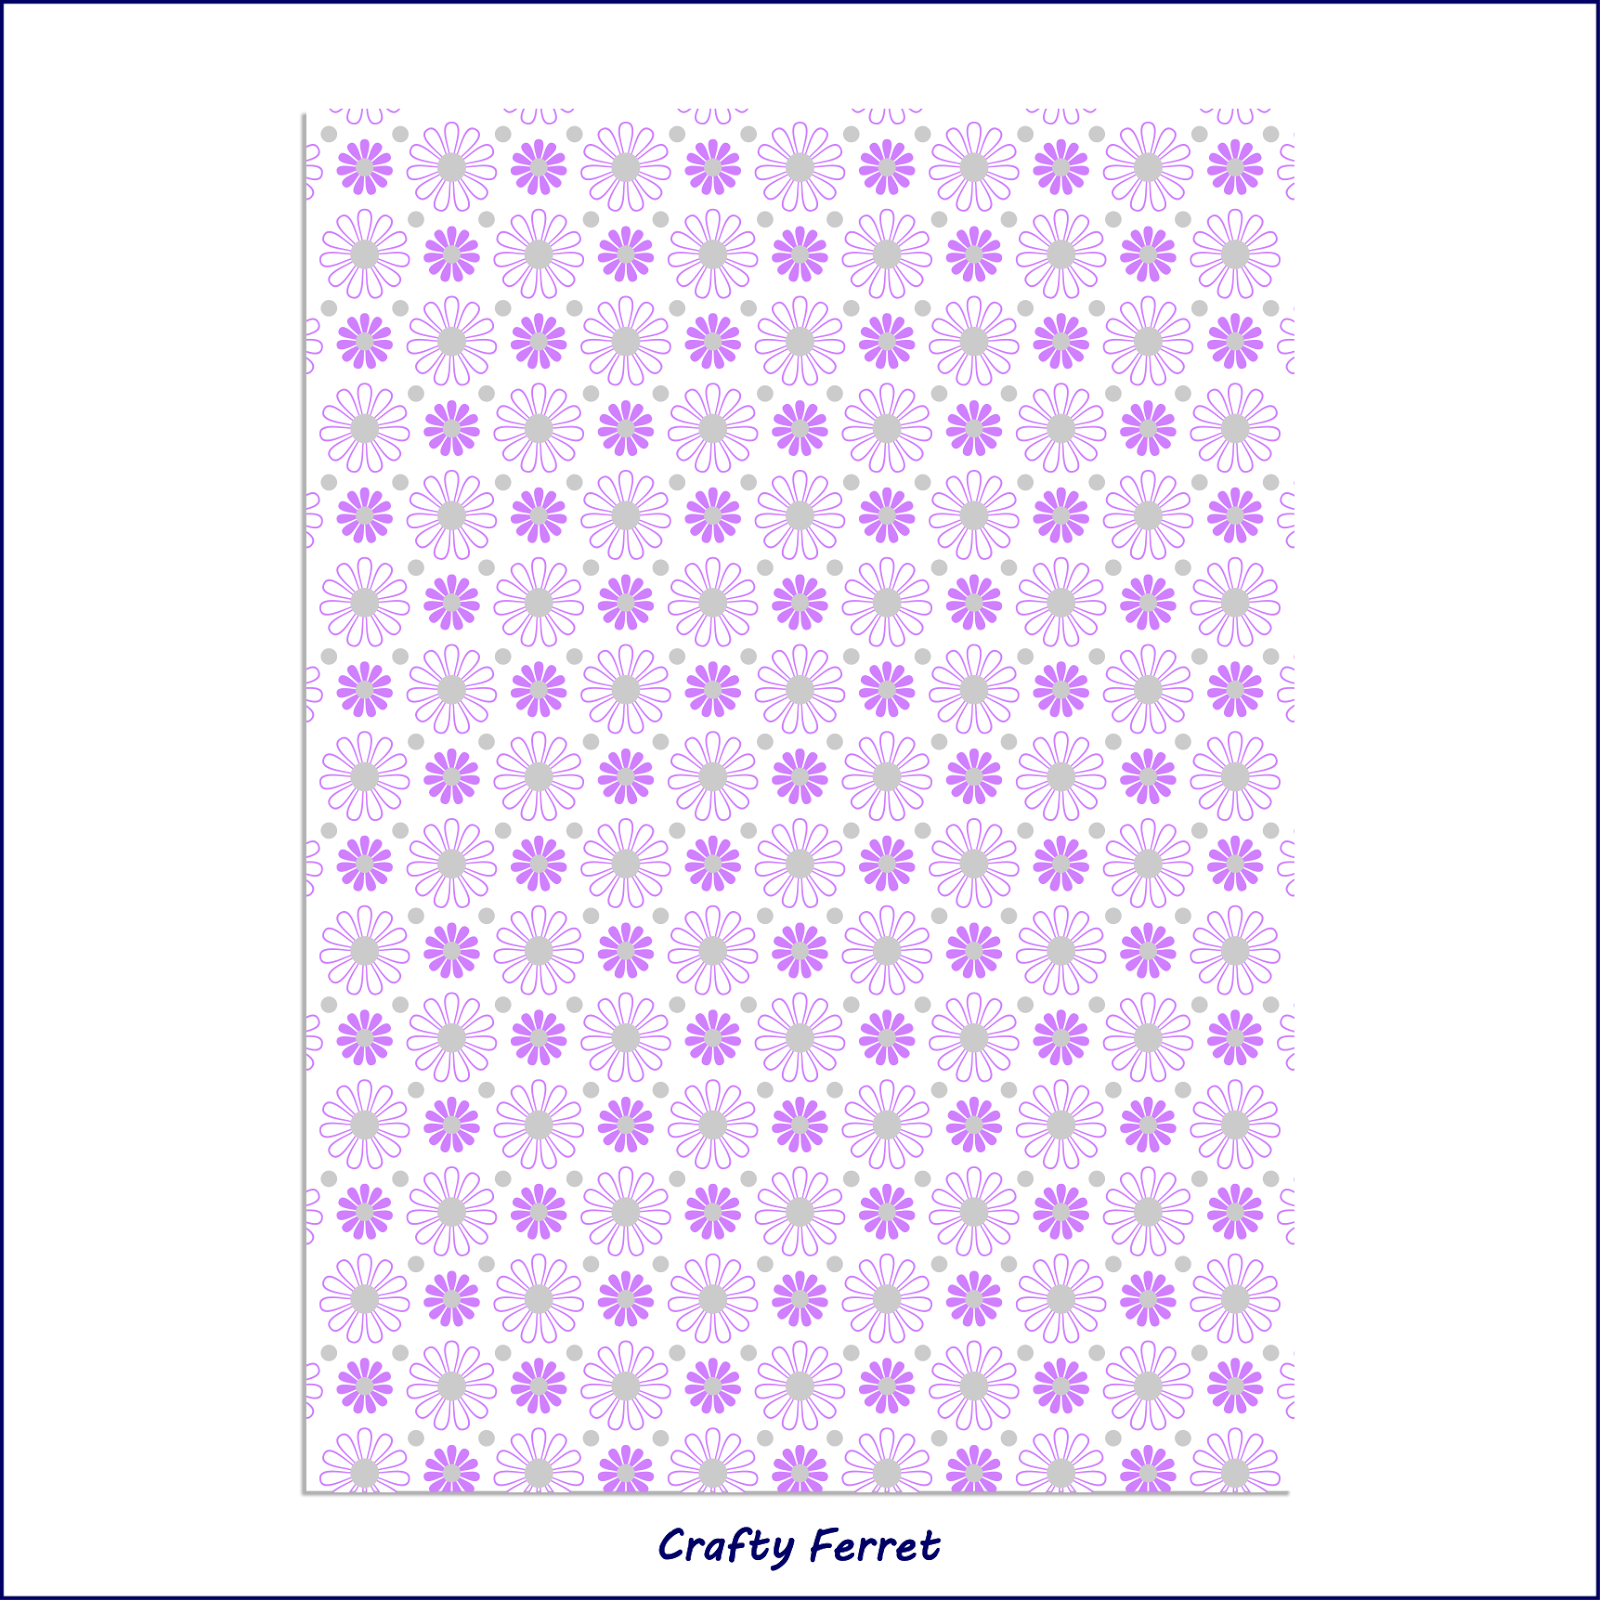 Simple daisy purple and grey printable pattern design free sample test print.